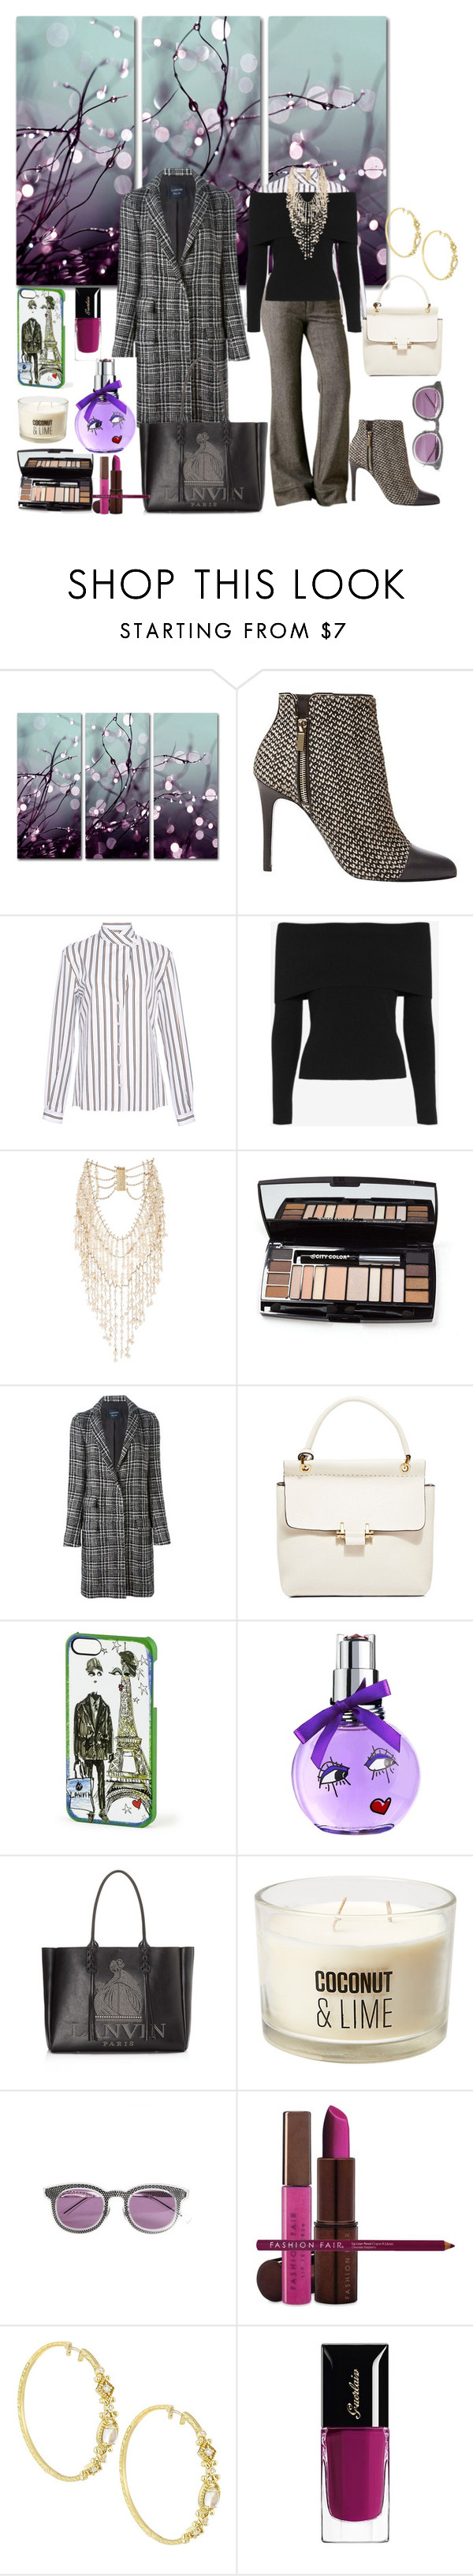 """""""Winter Work Day!"""" by denibrad ❤ liked on Polyvore featuring мода, Trademark Fine Art, Lanvin, Alexis Mabille, Free People, A.L.C., Rosantica, Hakusan, Fashion Fair и Penny Preville"""